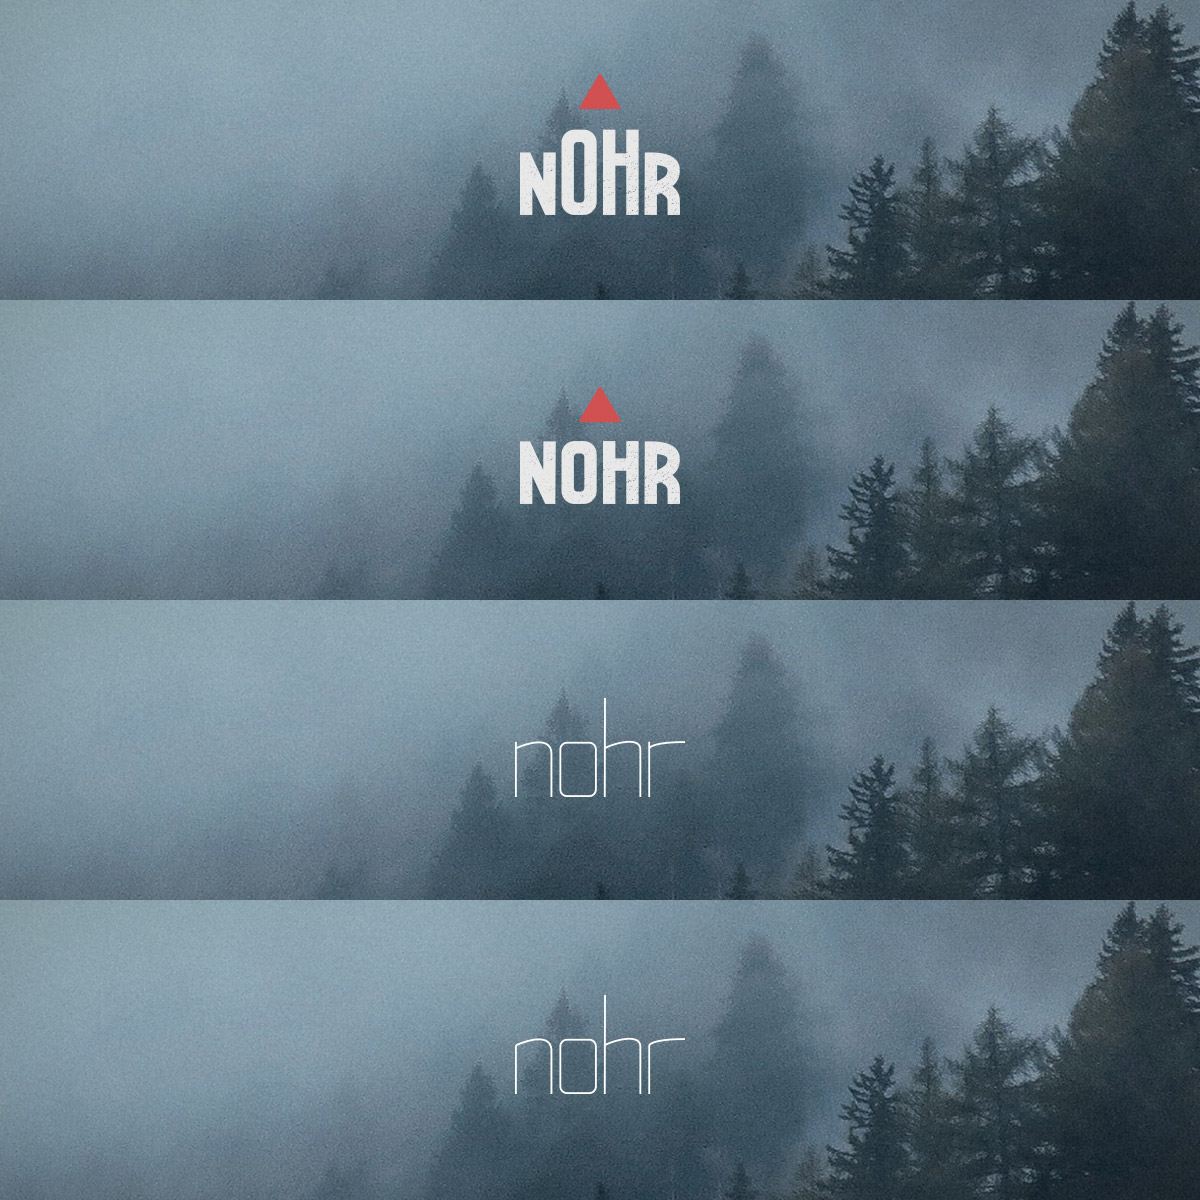 Four logos on a mountain/forest background.